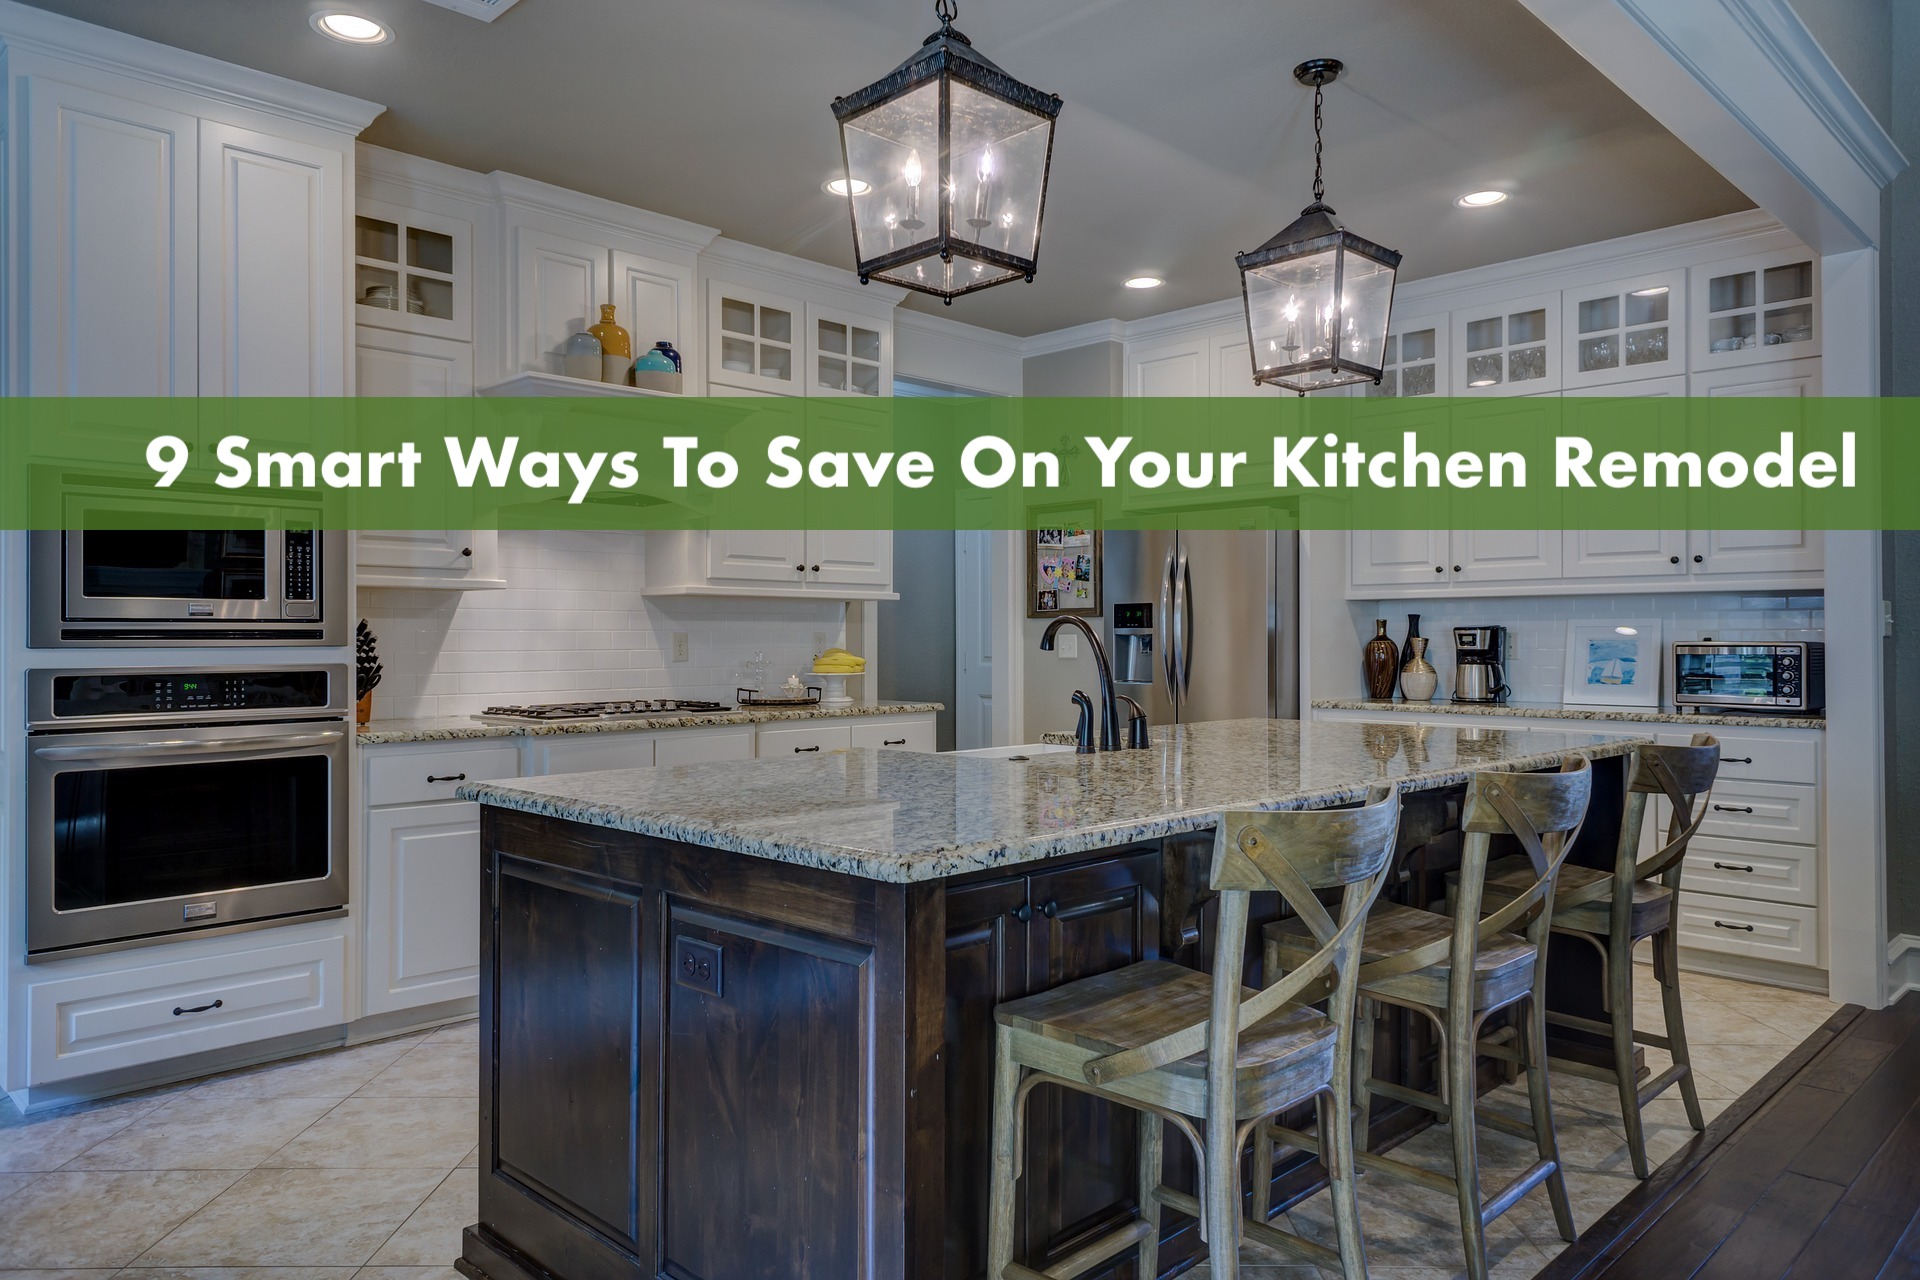 9 Smart Ways To Save On A Rental Kitchen Remodel